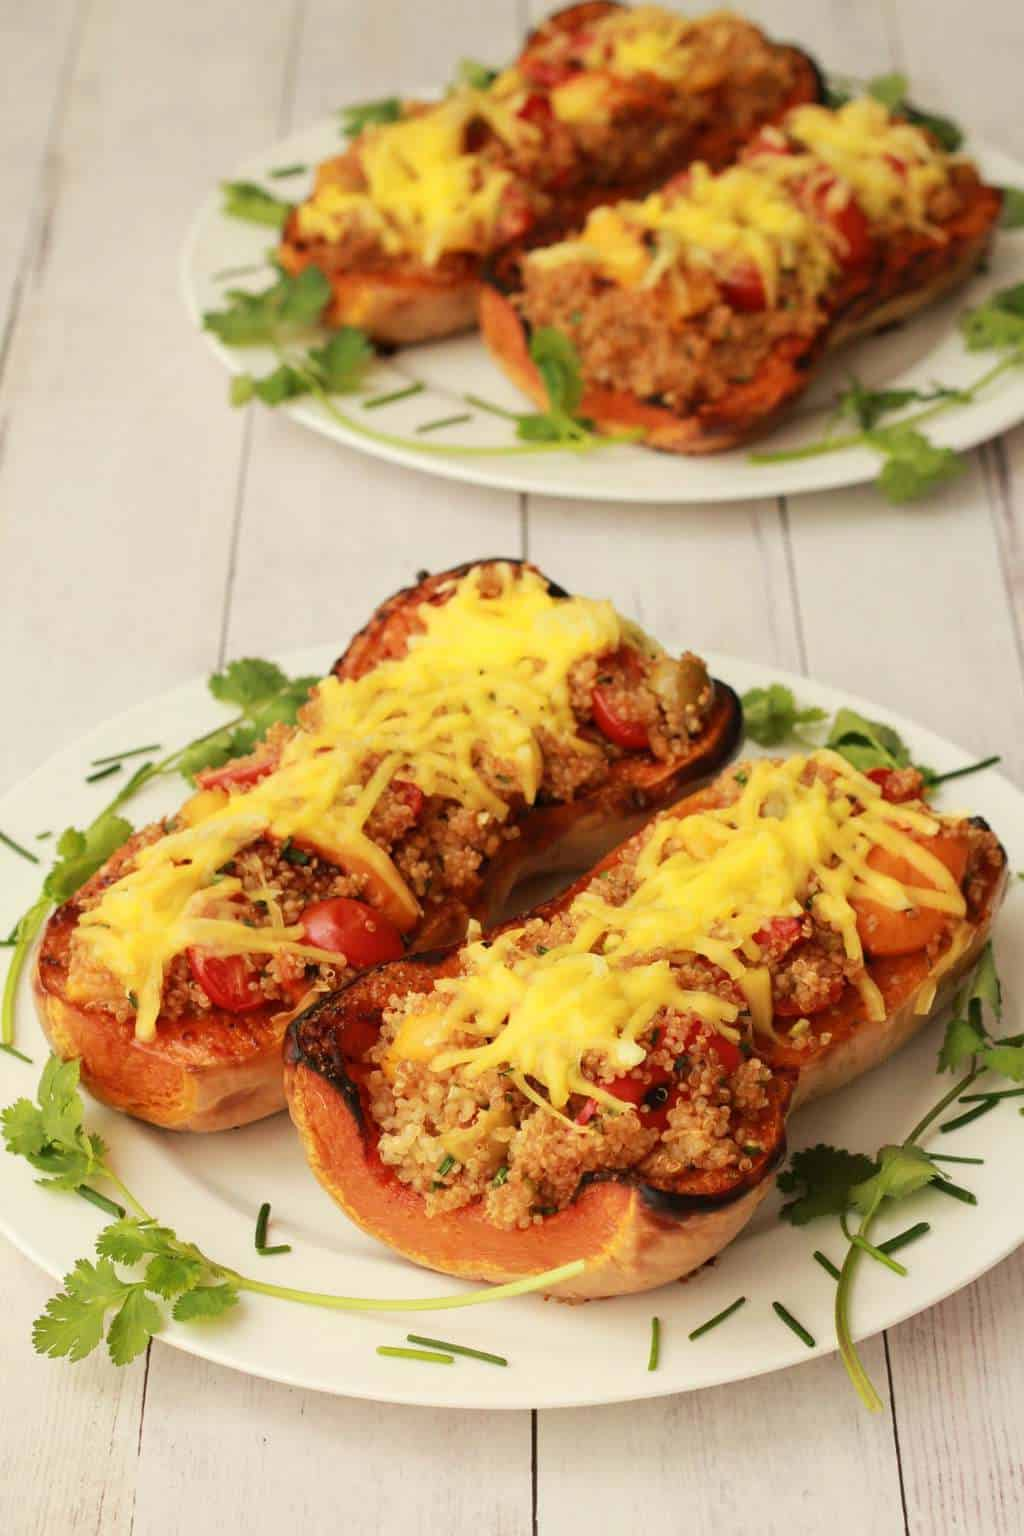 Stuffed Roasted Butternut #vegan #lovingitvegan #entree #roastedbutternut #glutenfree